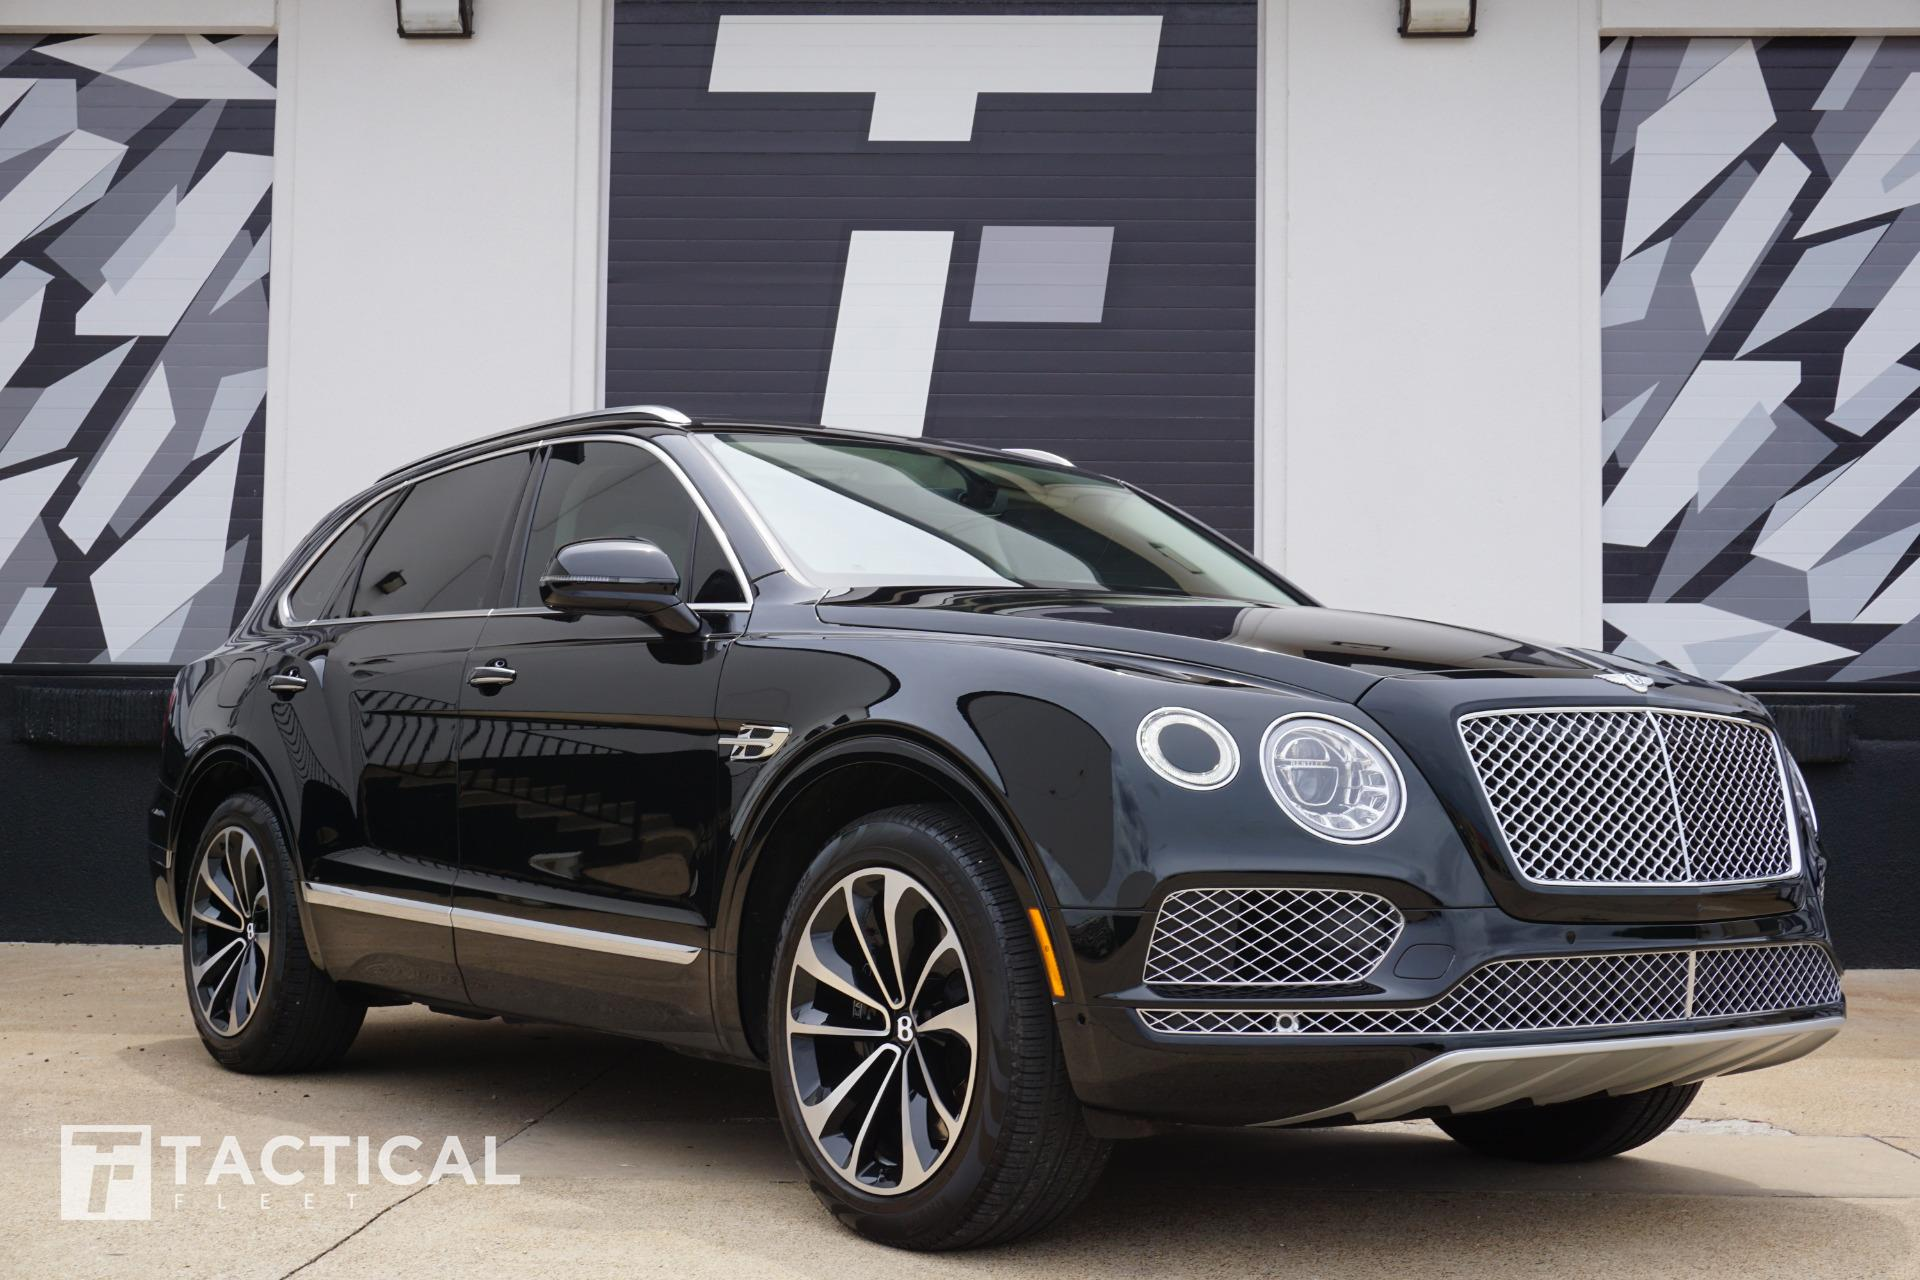 Used 2019 Bentley Bentayga V8 For Sale 169 900 Tactical